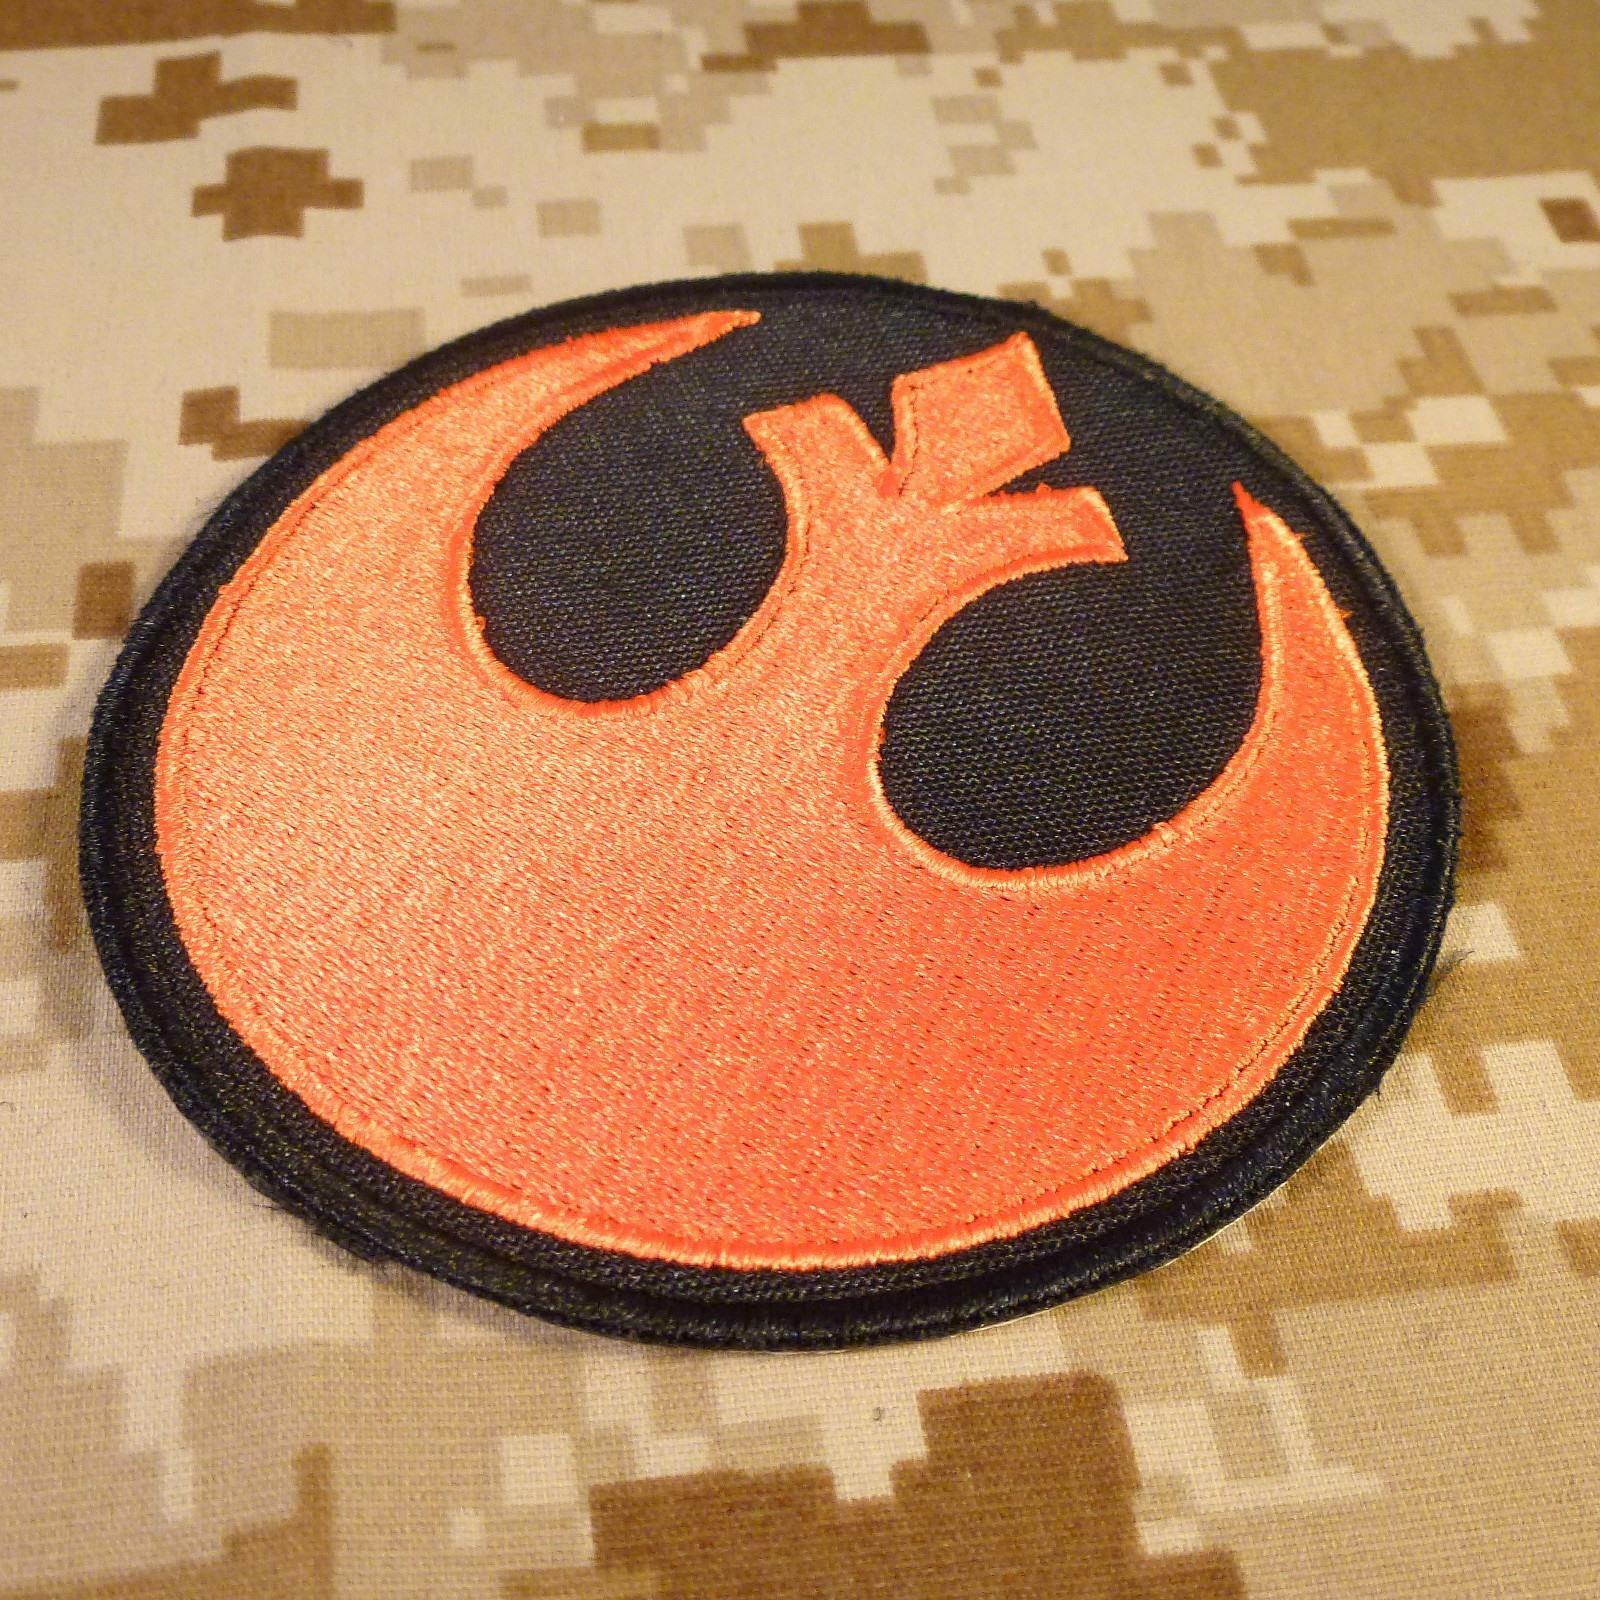 rebel alliance star wars embroidery rogue squadron x-wing tag hook patch